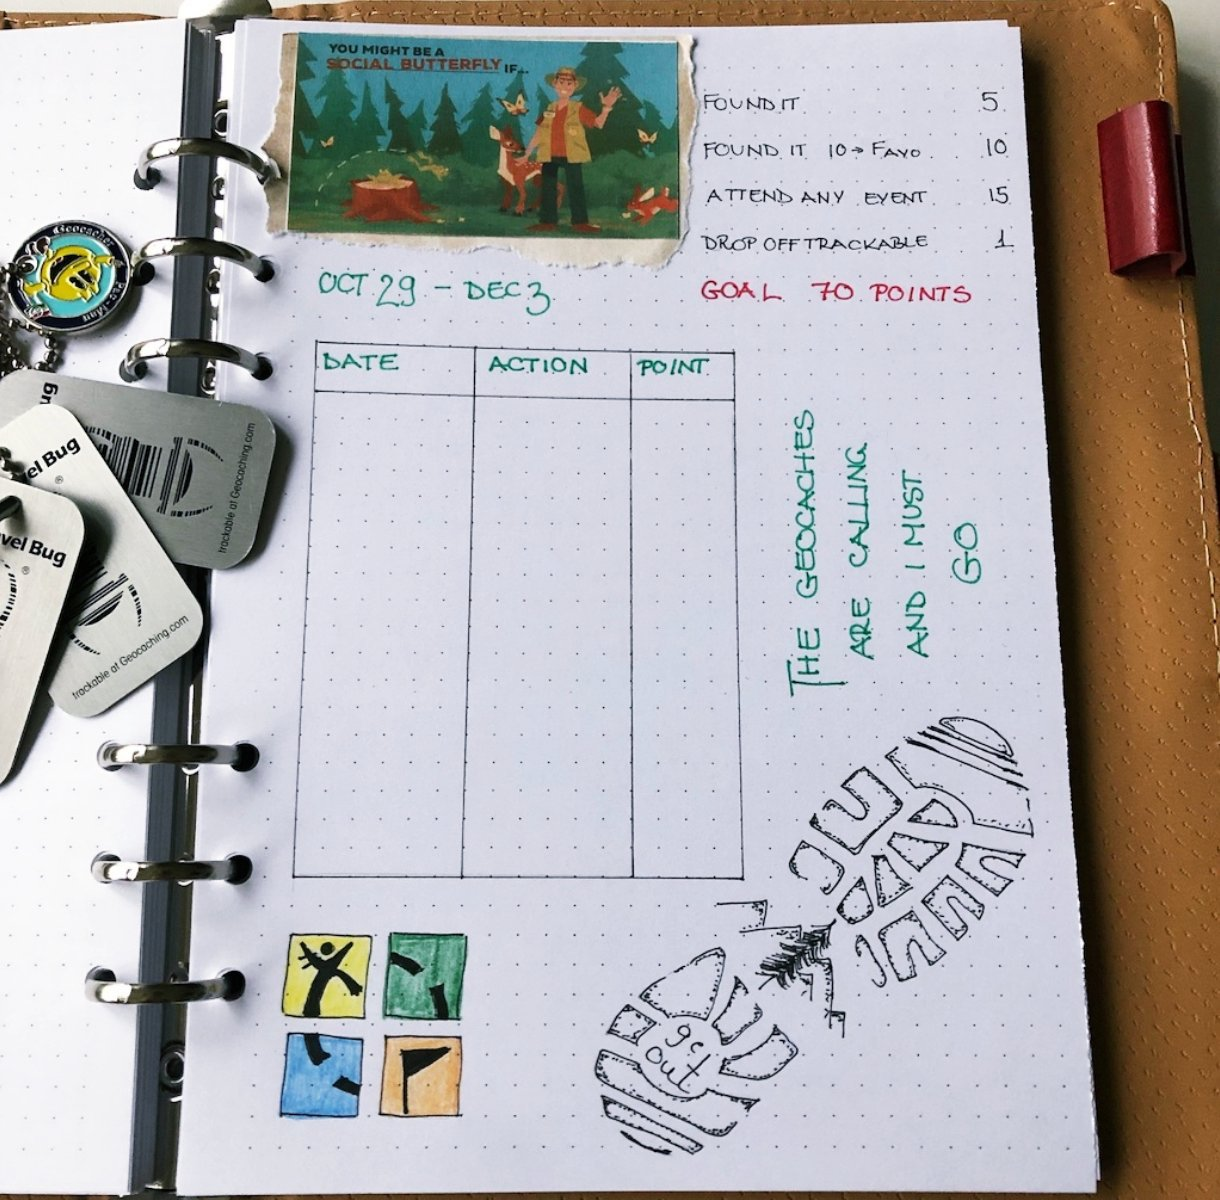 Geocaching Social Butterfly challenge tracker - itstartswithacoffee.com #bulletjournal #geocaching #tracker #challengetracker